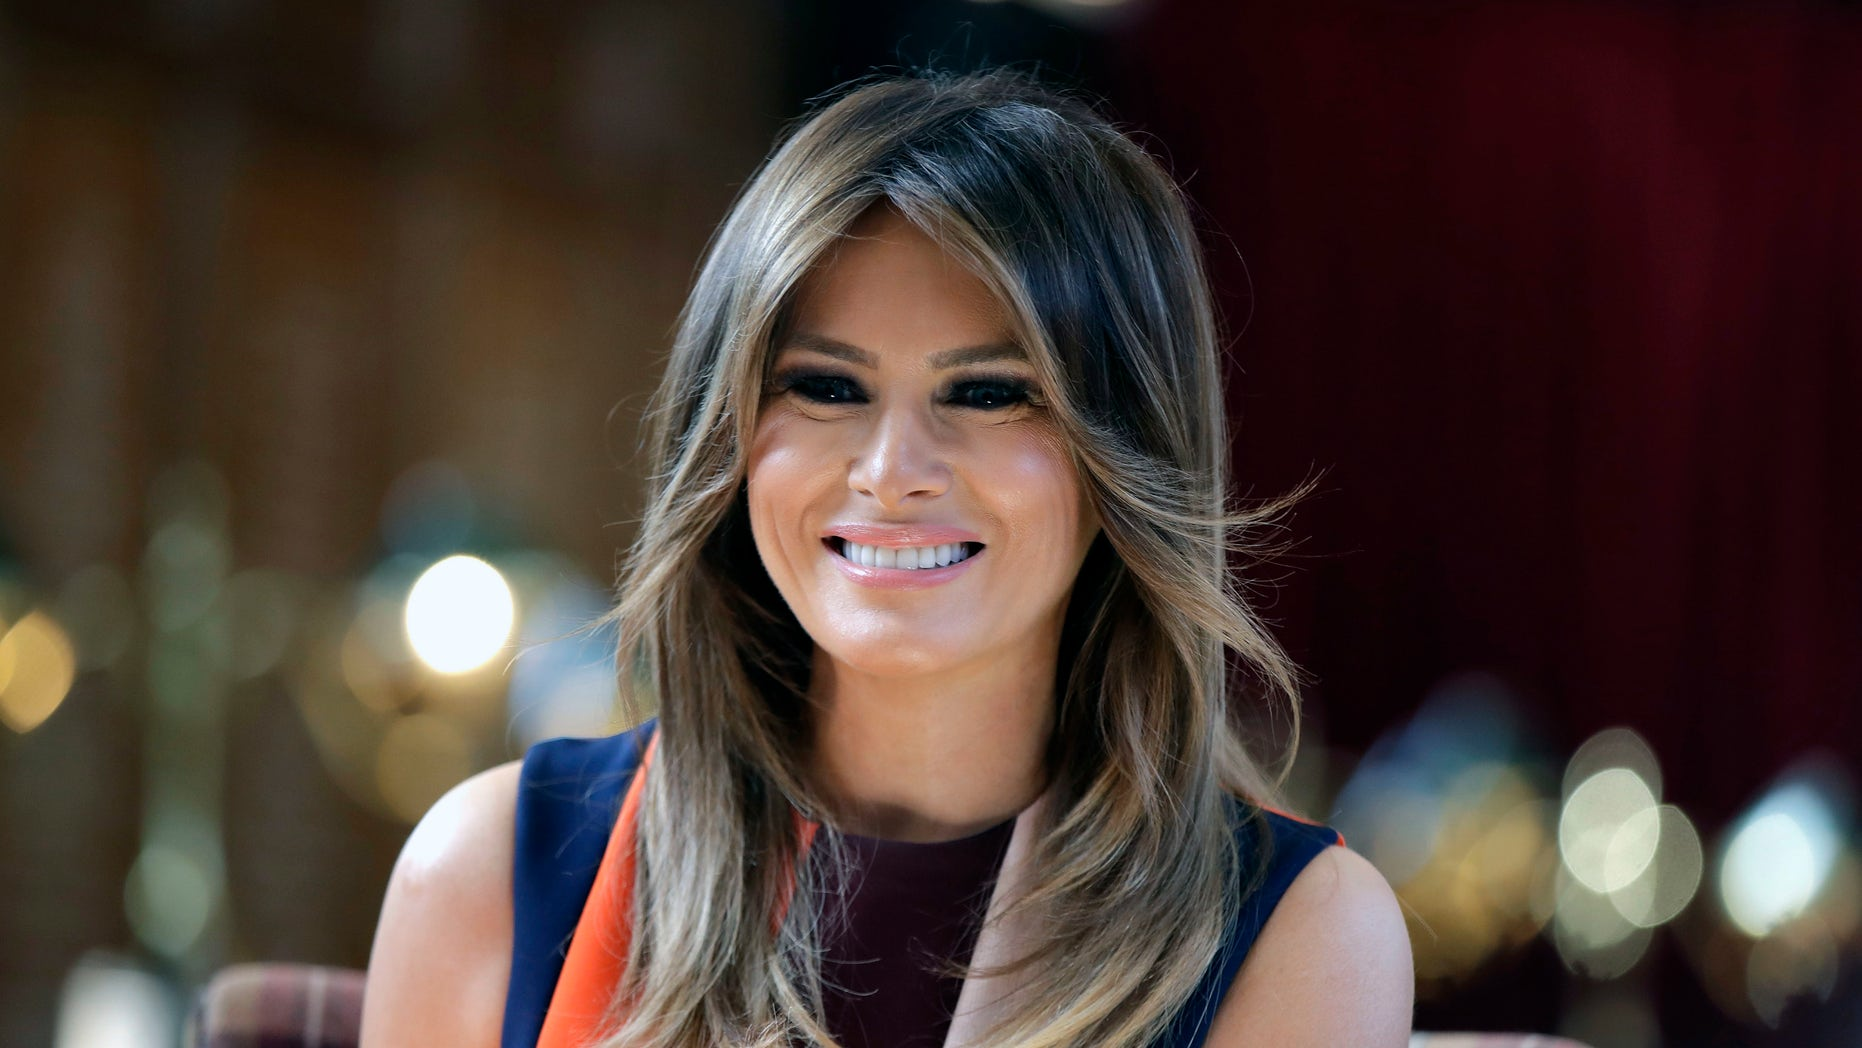 First Lady's Plane Turned Around After 'Minor Mechanical Issue'